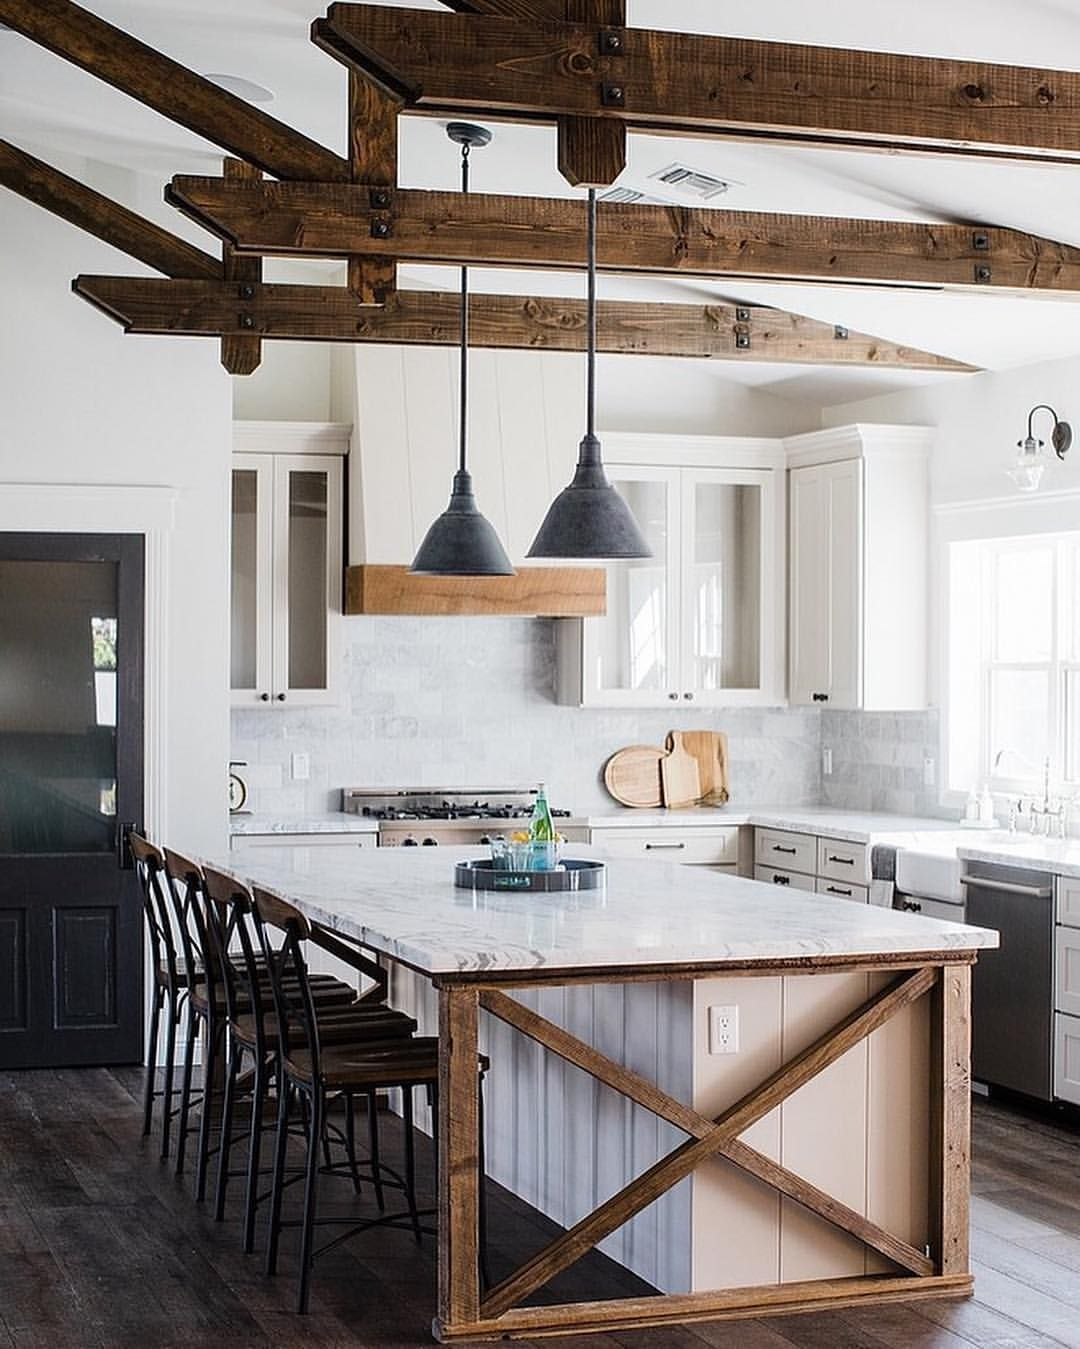 10 Remarkable Kitchen Designs Take A Look At These Ten Remarkable Modern Kitche Farmhouse Kitchen Design Modern Farmhouse Kitchens Farmhouse Kitchen Decor